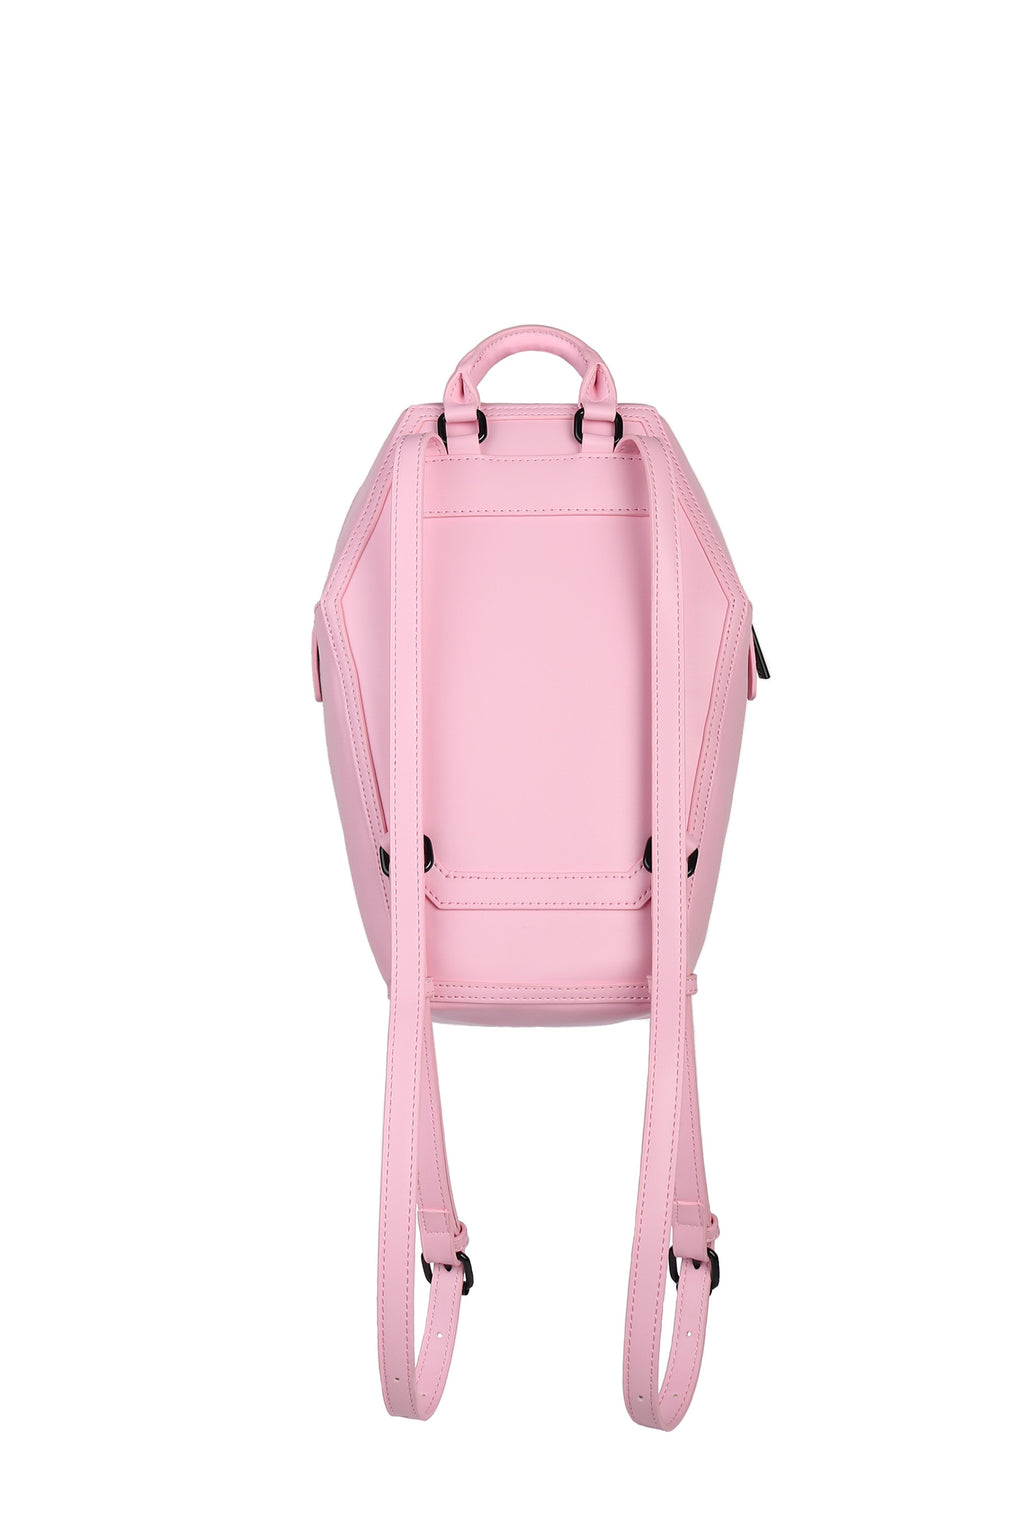 Never Trust the Living Pink Backpack